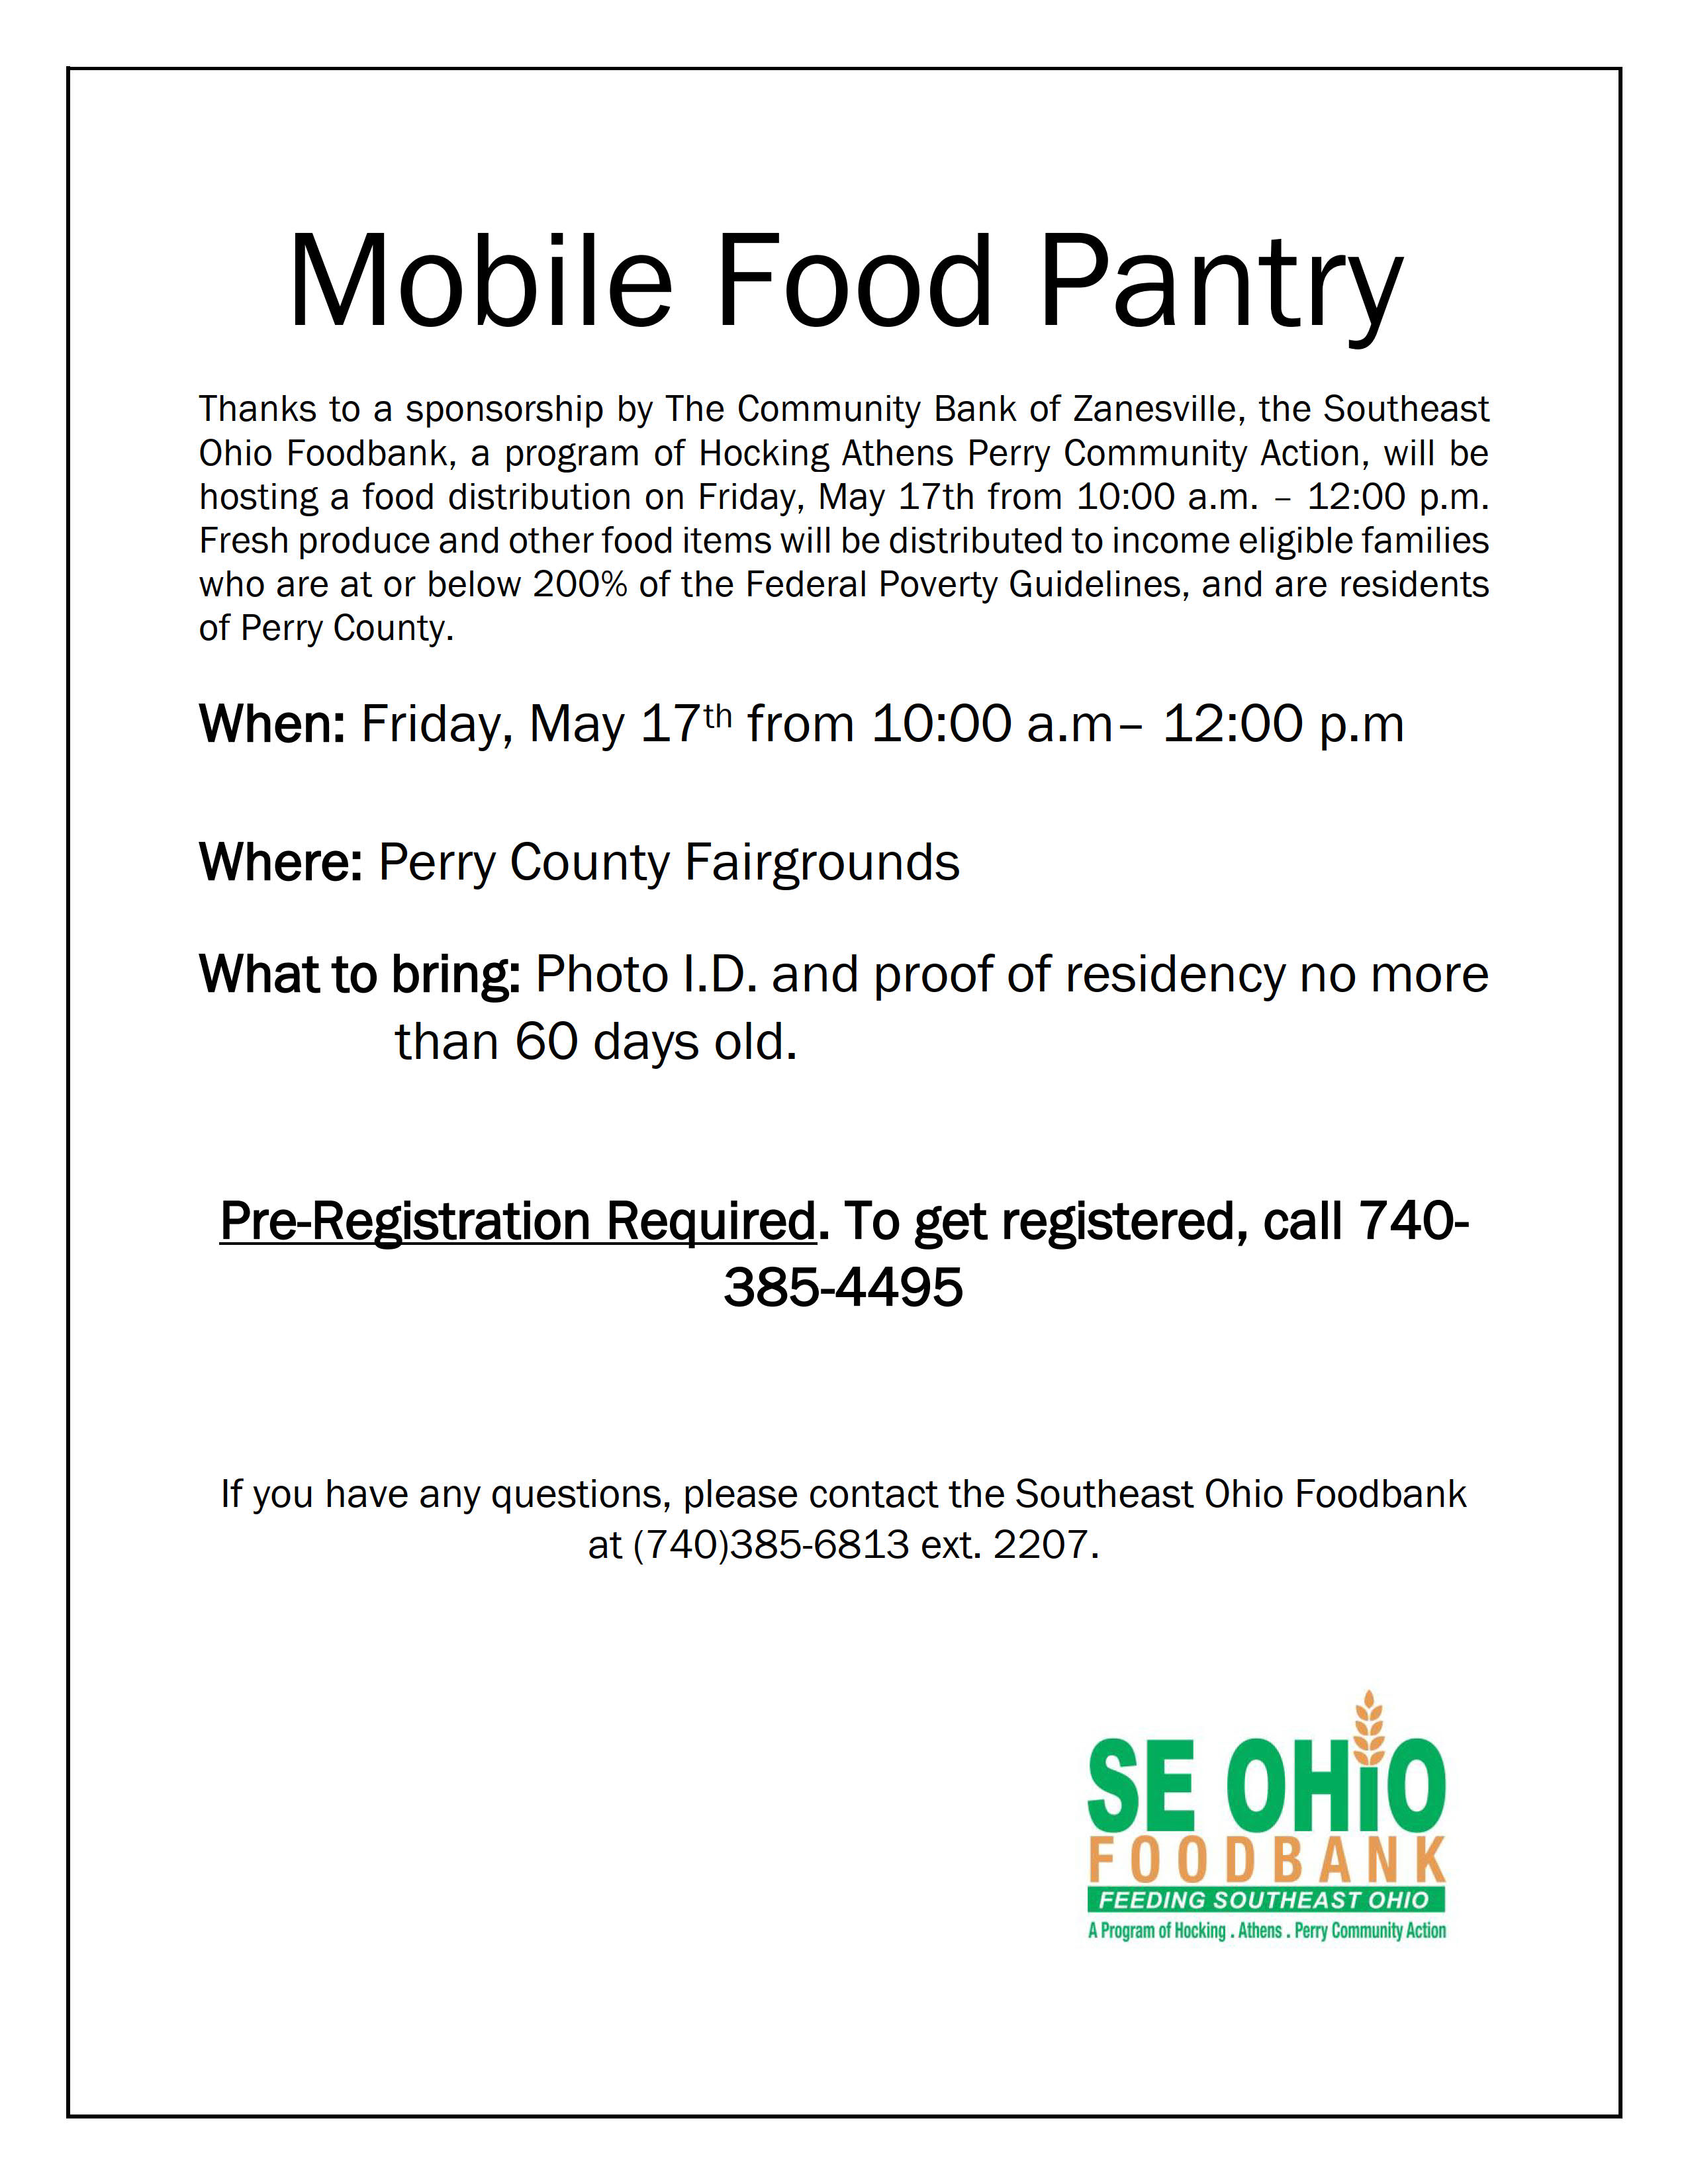 Mobile Food Pantry — Perry County Ohio